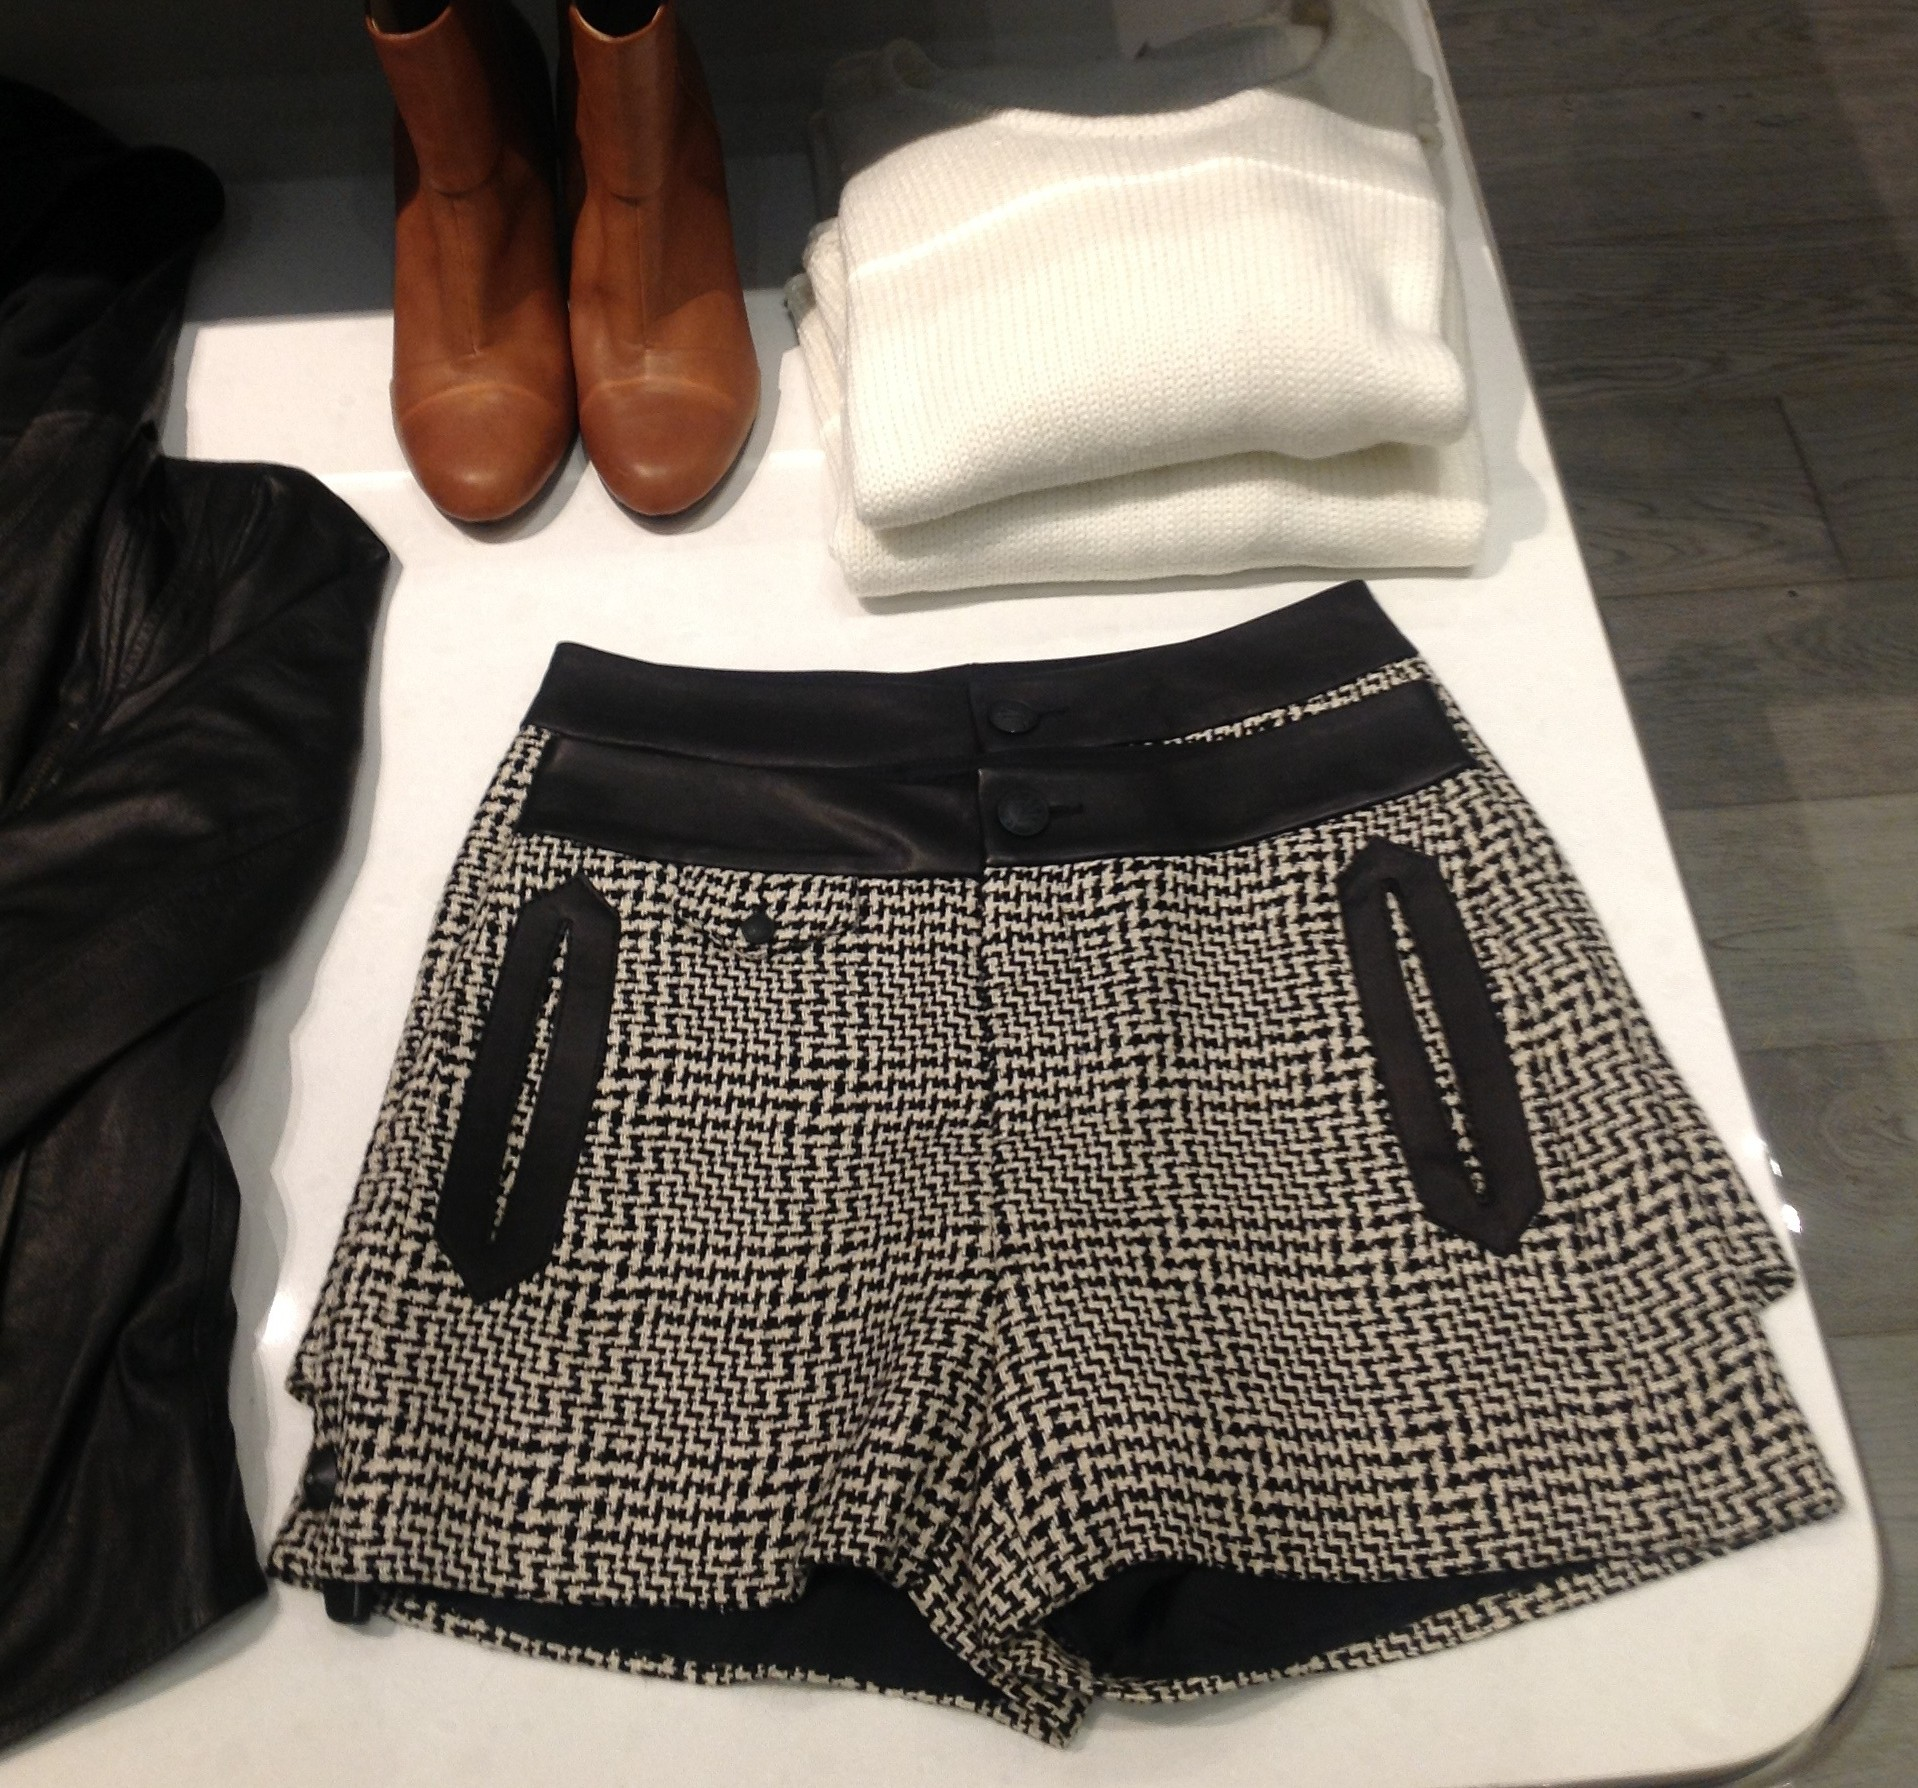 Black and white houndstooth shorts with black leather trim from Rag & Bones. (Photo: Shari Sheffield/DC on Heels)